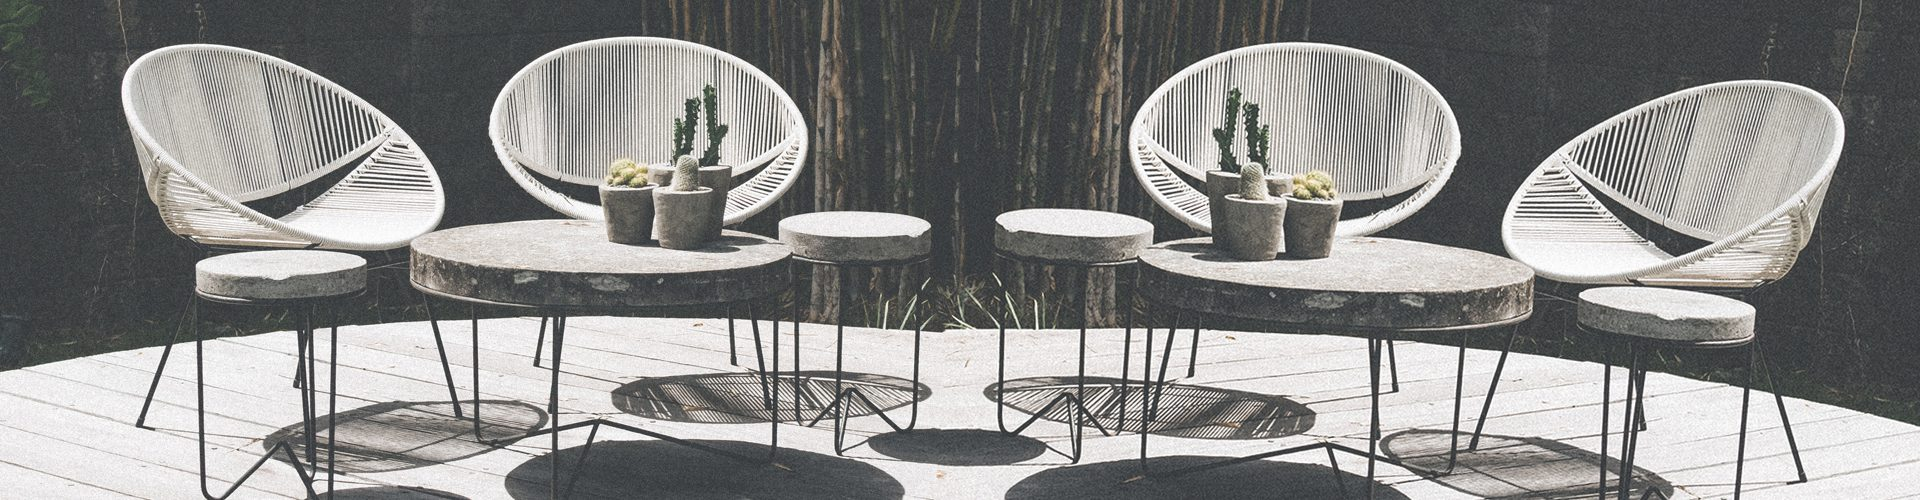 garden furniture wish list - patio furniture